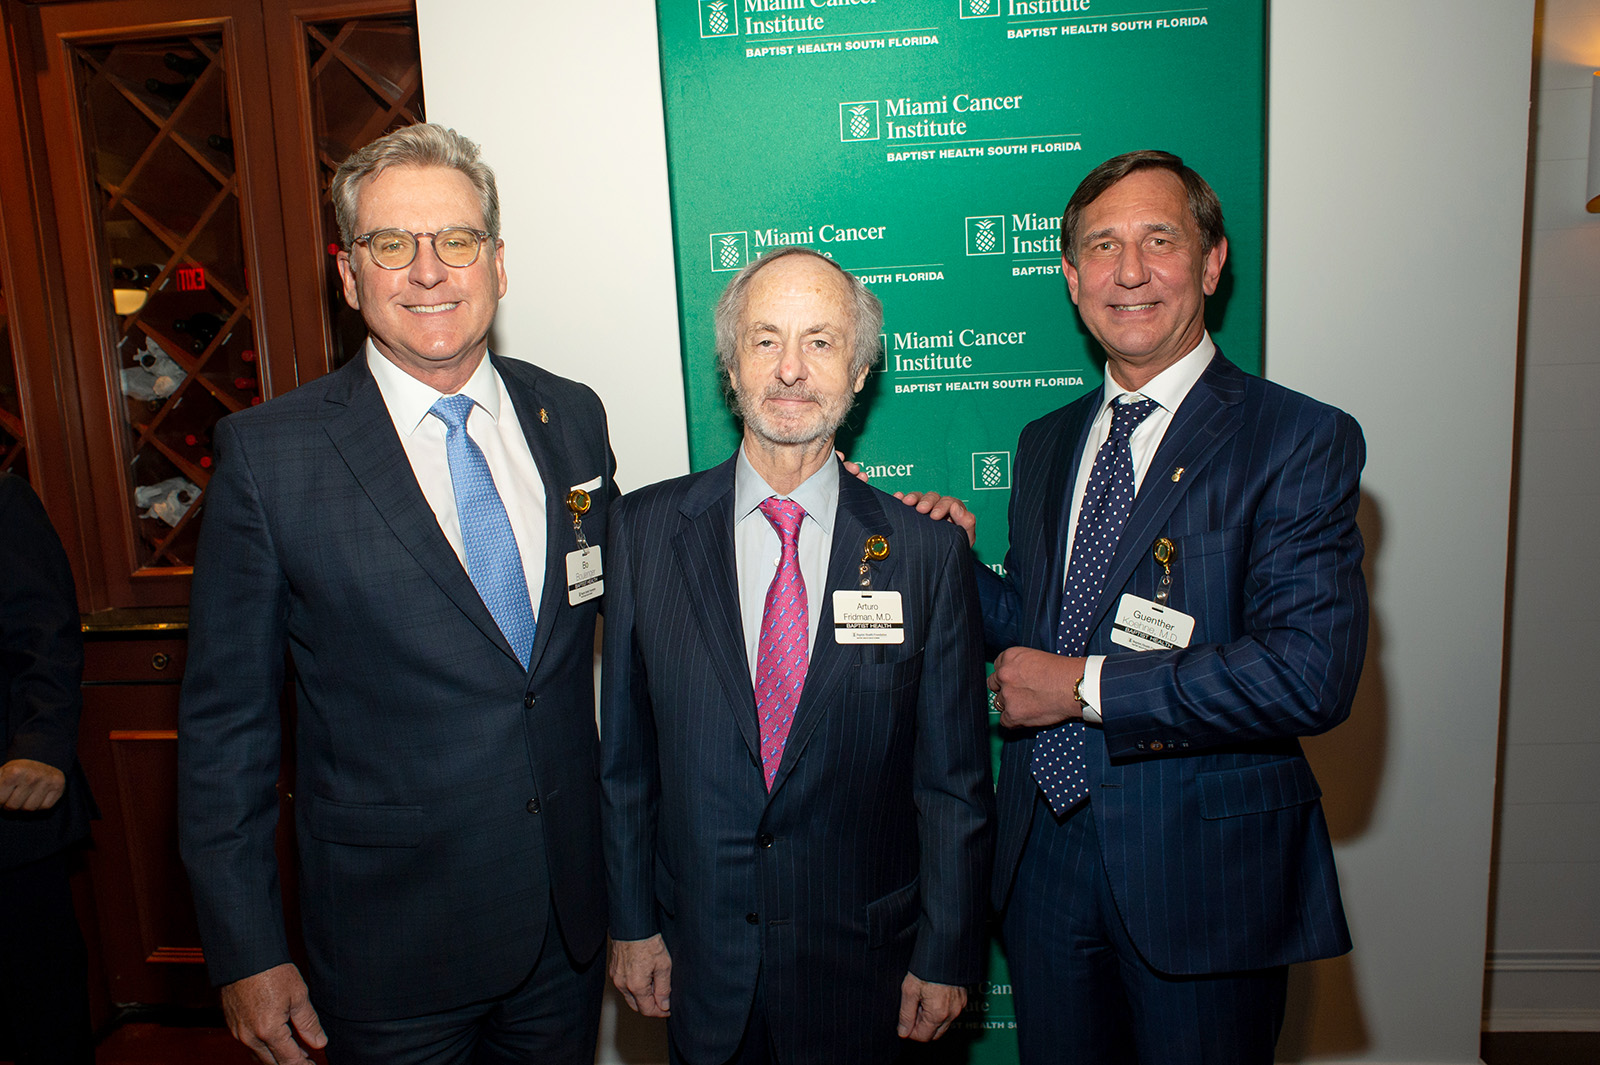 [Pictured, left to right] Bo Boulenger, Executive Vice President and Chief Operating Officer at Baptist Health South Florida; and Drs